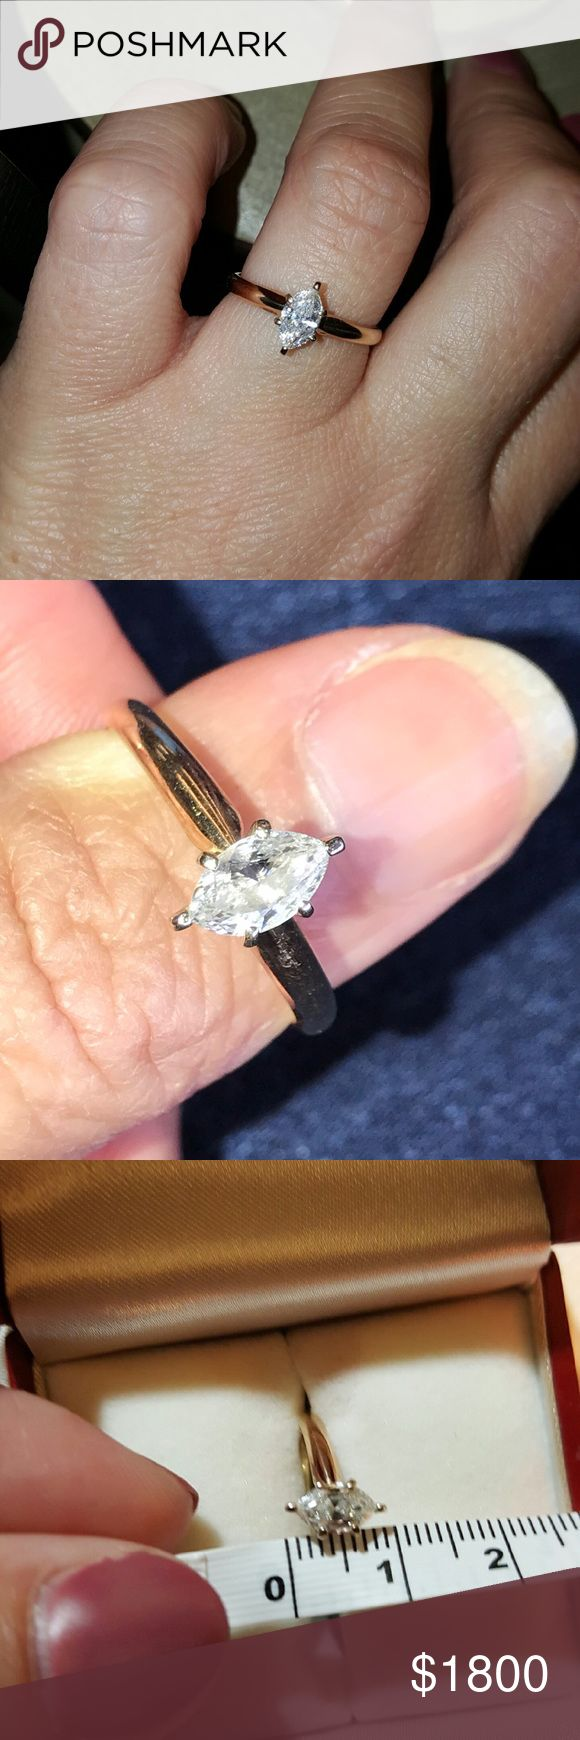 HUGE TRADE FOR TWILLIAMS Beautiful diamond ring in 14 kt yellow gold! 3/4ct. Great clarity and color on this beauty. 3/4 ct of this size and quality would retail from 1800-3200. Gorgous ring!!! Sz 7.5 but sizable up or down. Tv 2200 trading also a sterling wedding set, white gold pearl necklace, new Kirby mk purse for 3-stone 1-carat diamond ring, 3/4 ct diamond marquis, heart diamond, clothing. 2-aldo purses. Jewelry Rings